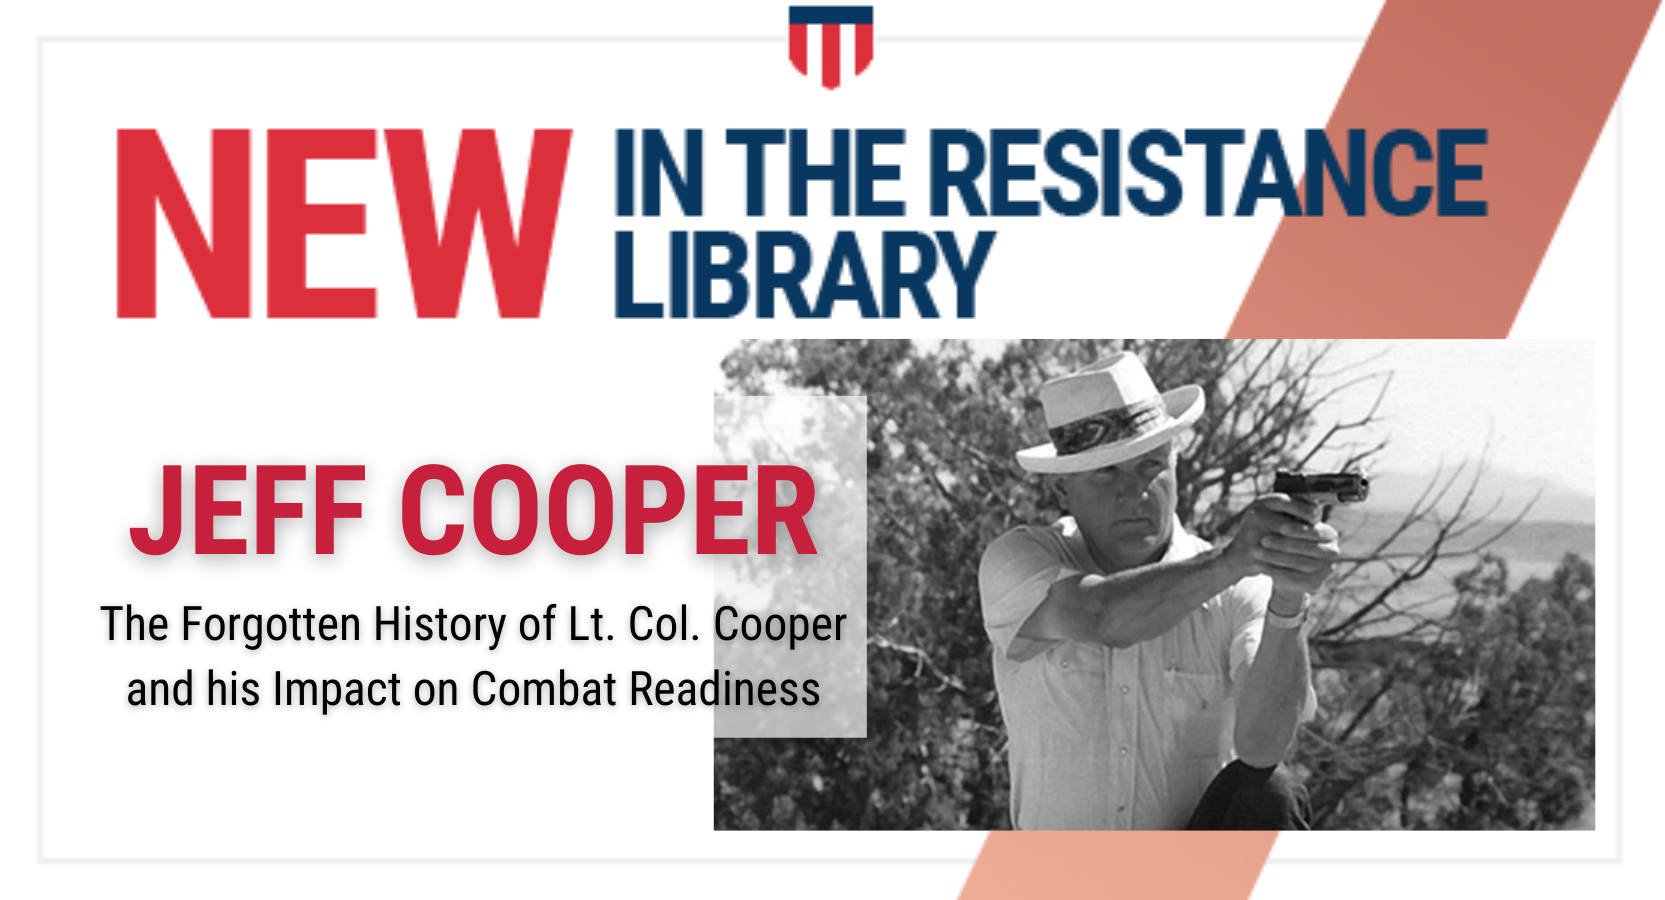 The Forgotten History of Lt. Col. Cooper and his Impact on Combat Readiness